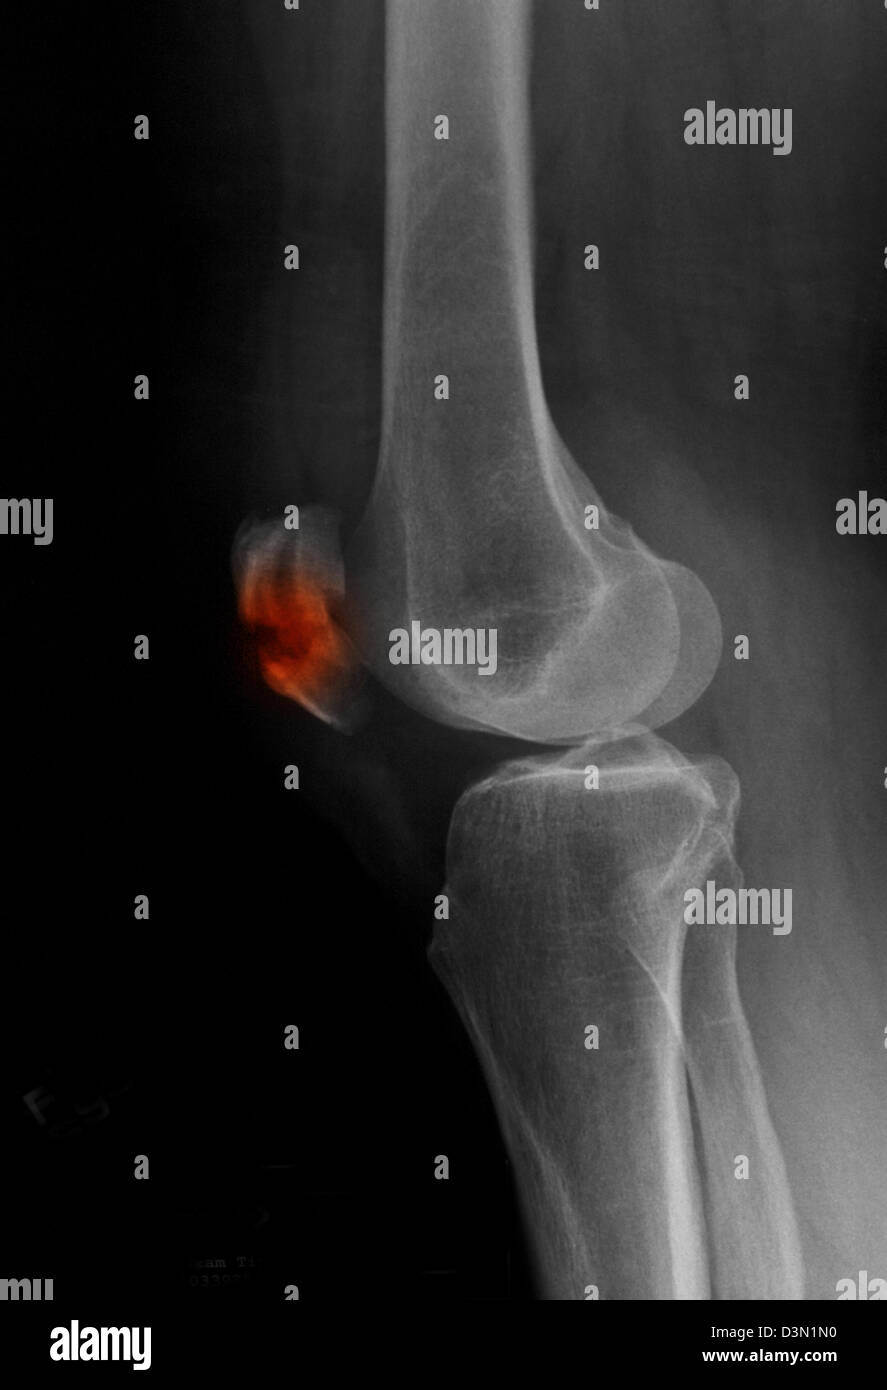 x-ray showing a fracture of the patella, kneecap Stock Photo